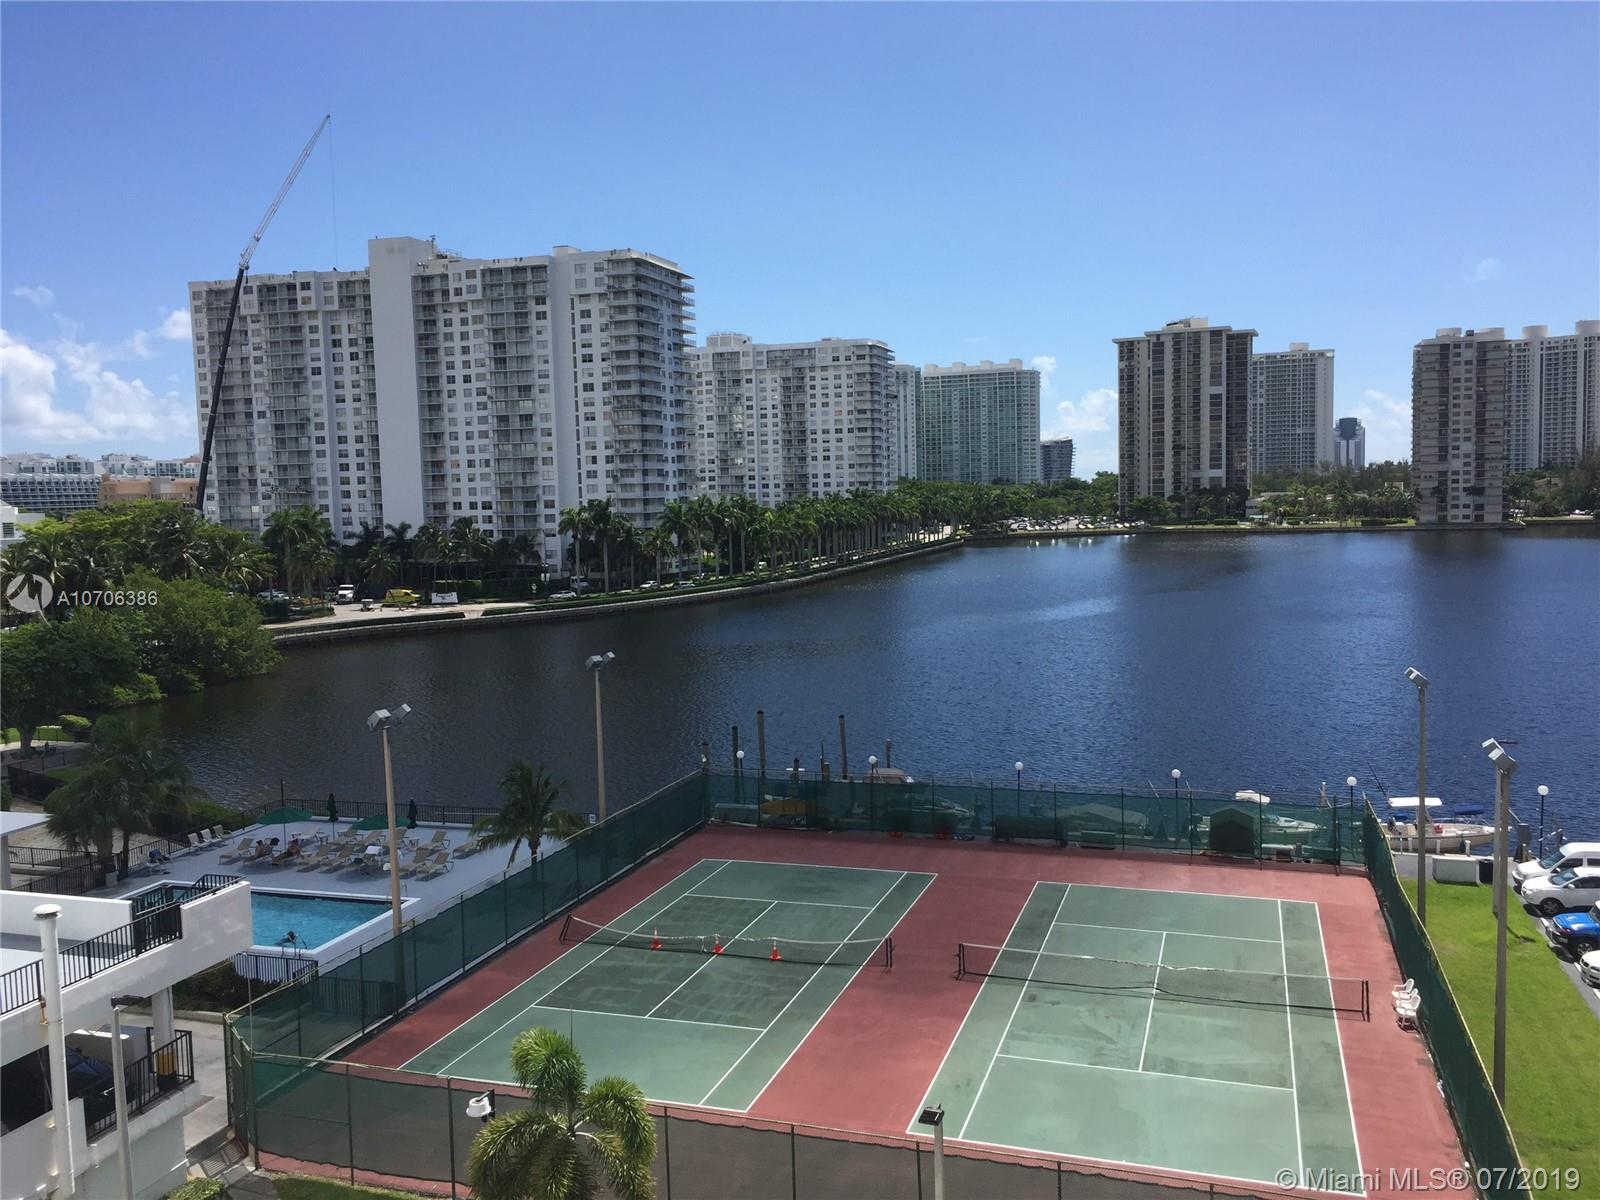 2750 NE 183rd St #611, Aventura, FL 33160 is now new to the market!